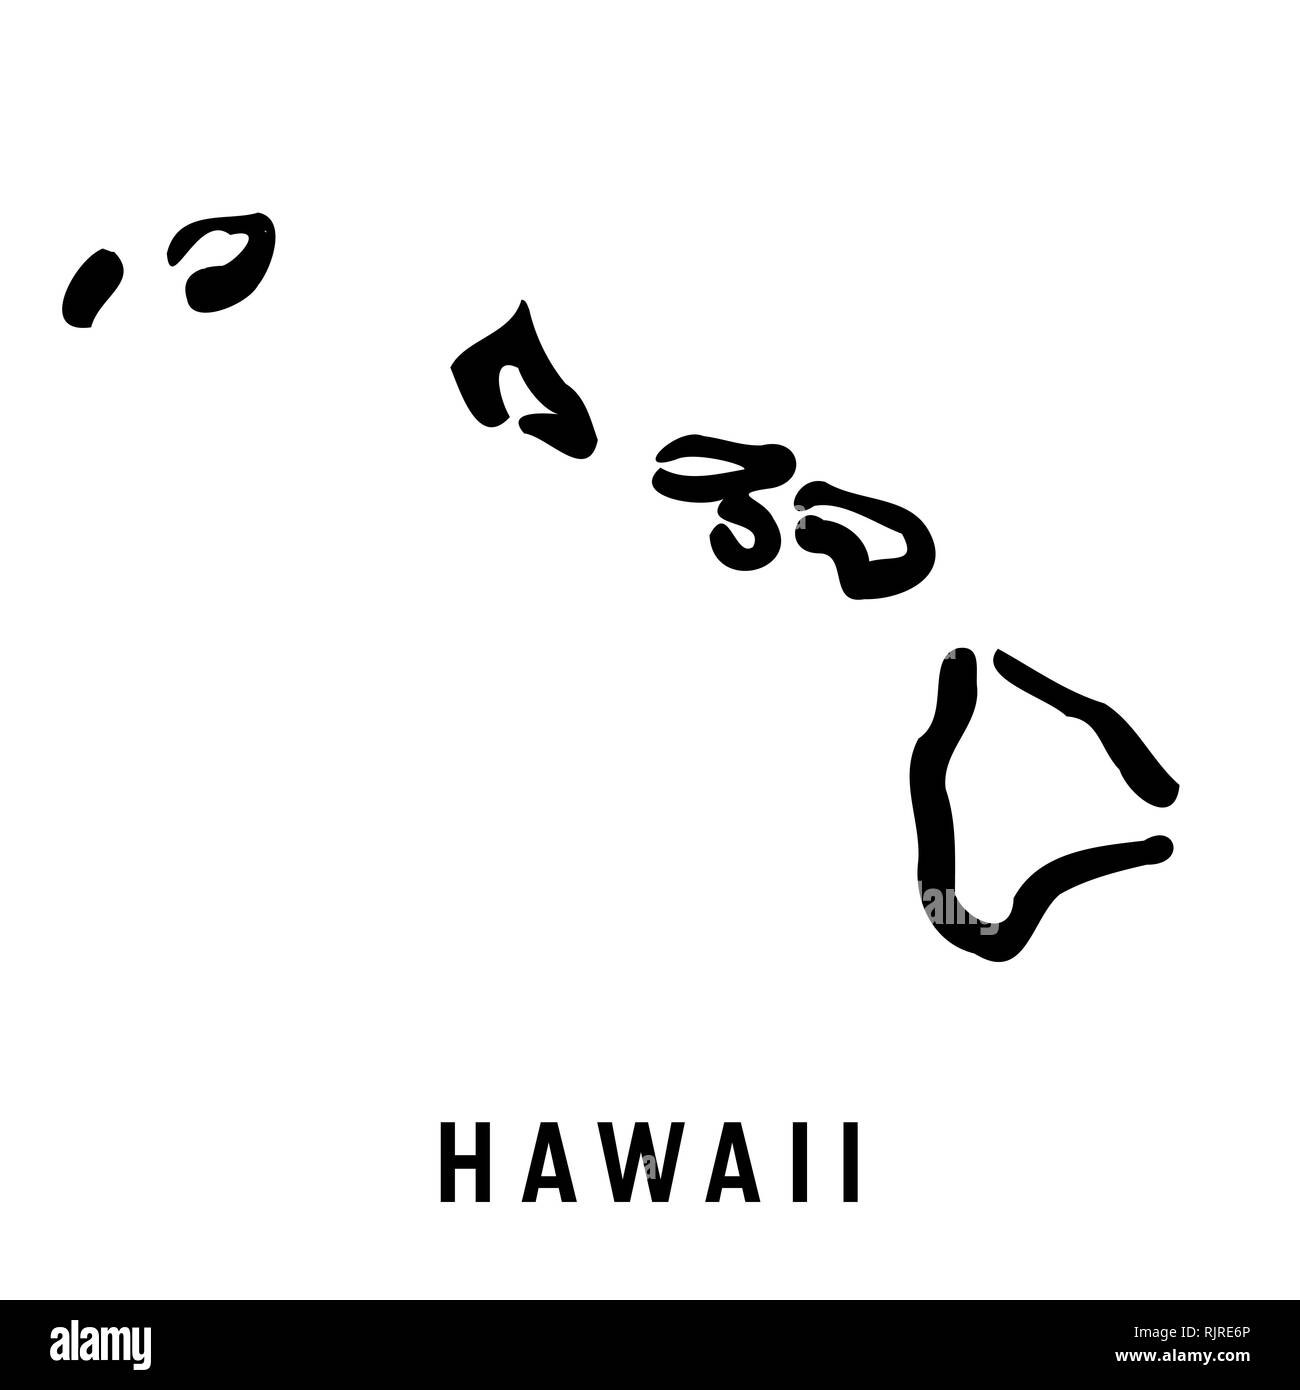 Hawaii simple logo. State map outline - smooth simplified US state ...